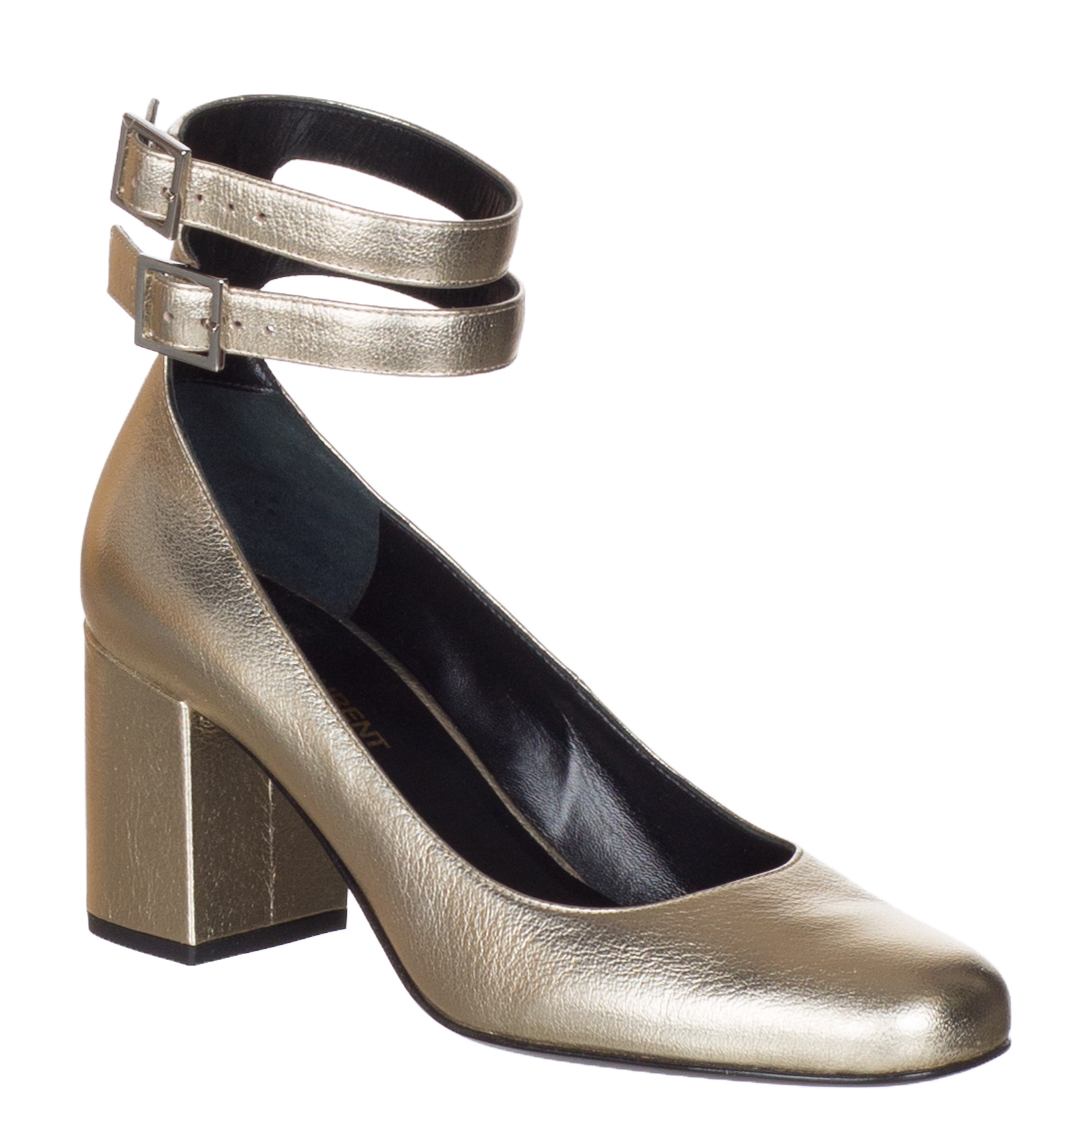 c22a97195 Saint Laurent Women's Gold Metallic Babies 70 Double Strap Pumps Shoes